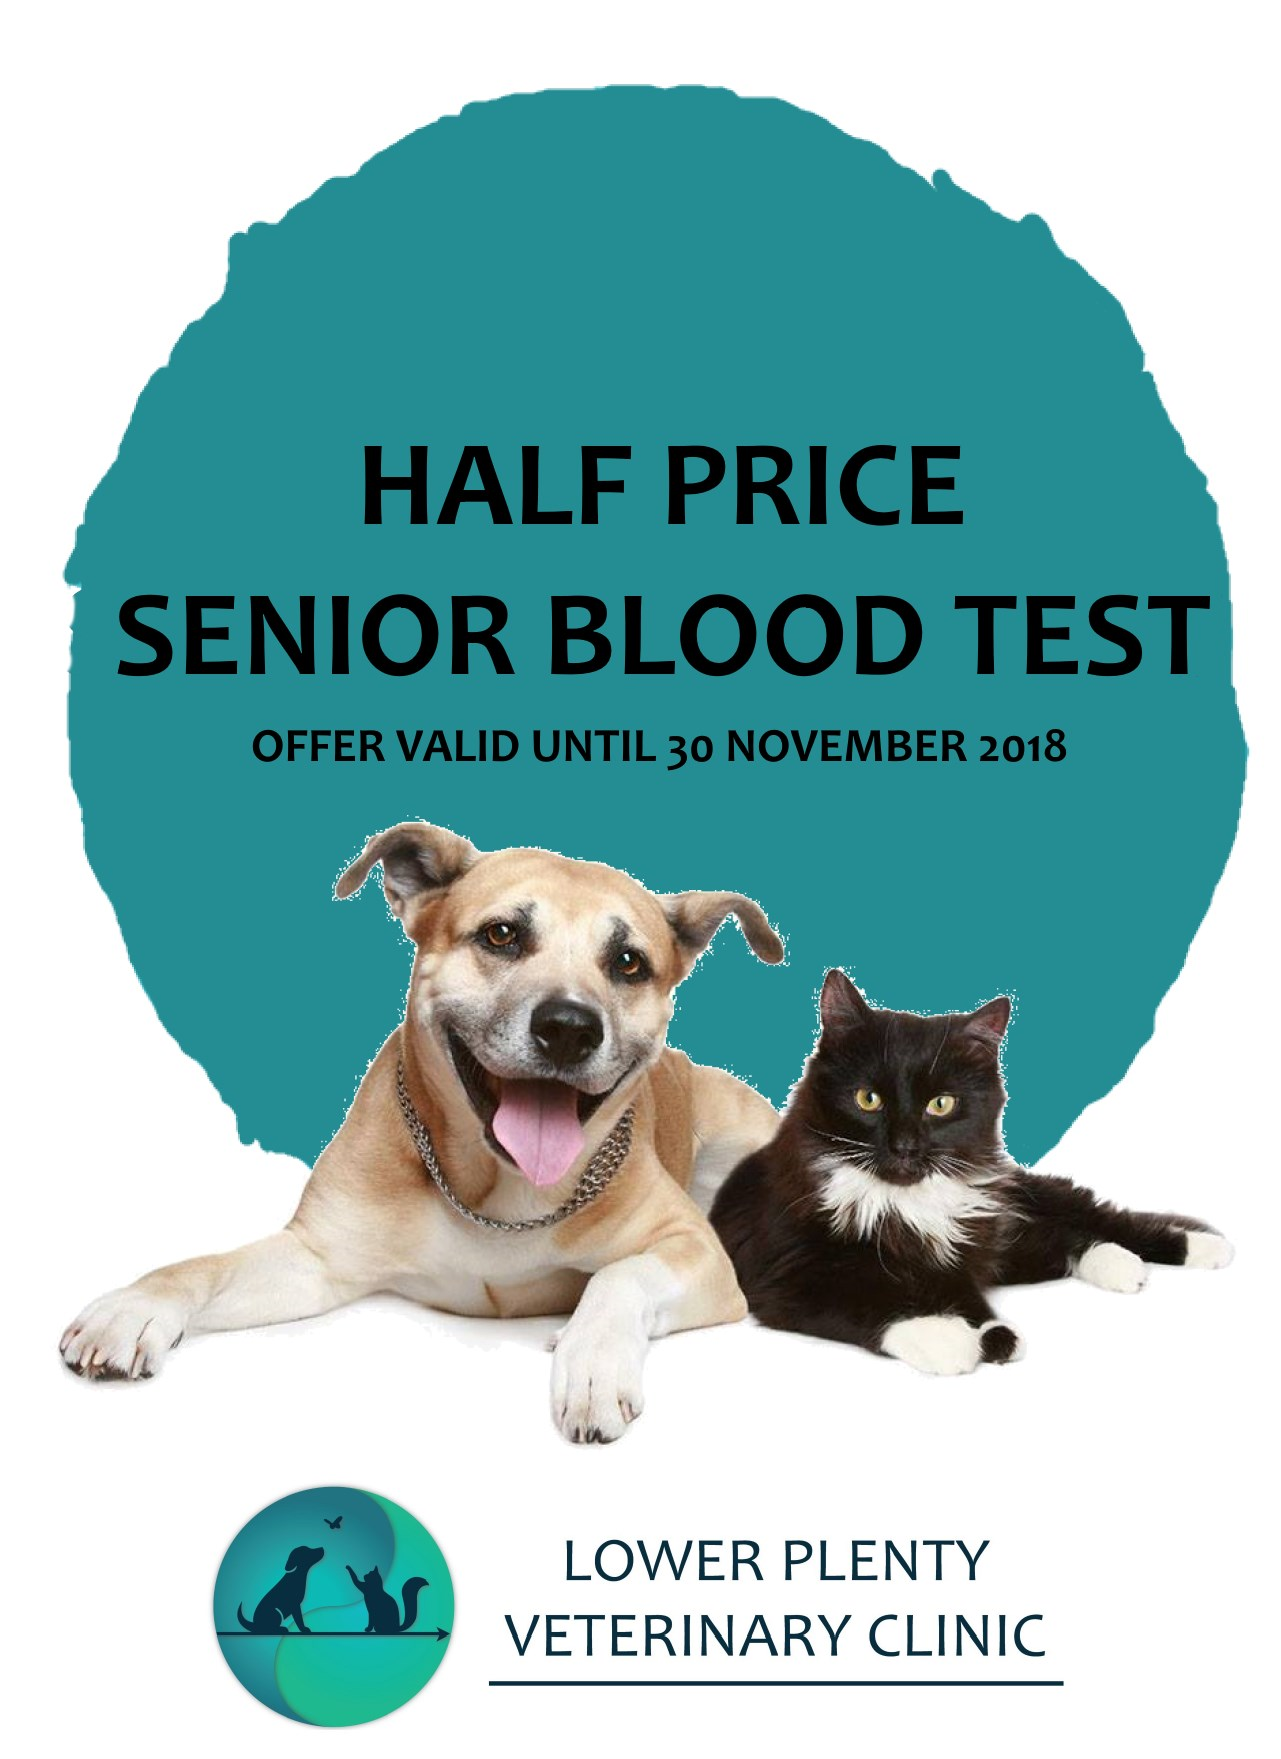 Half Price Senior Blood Test